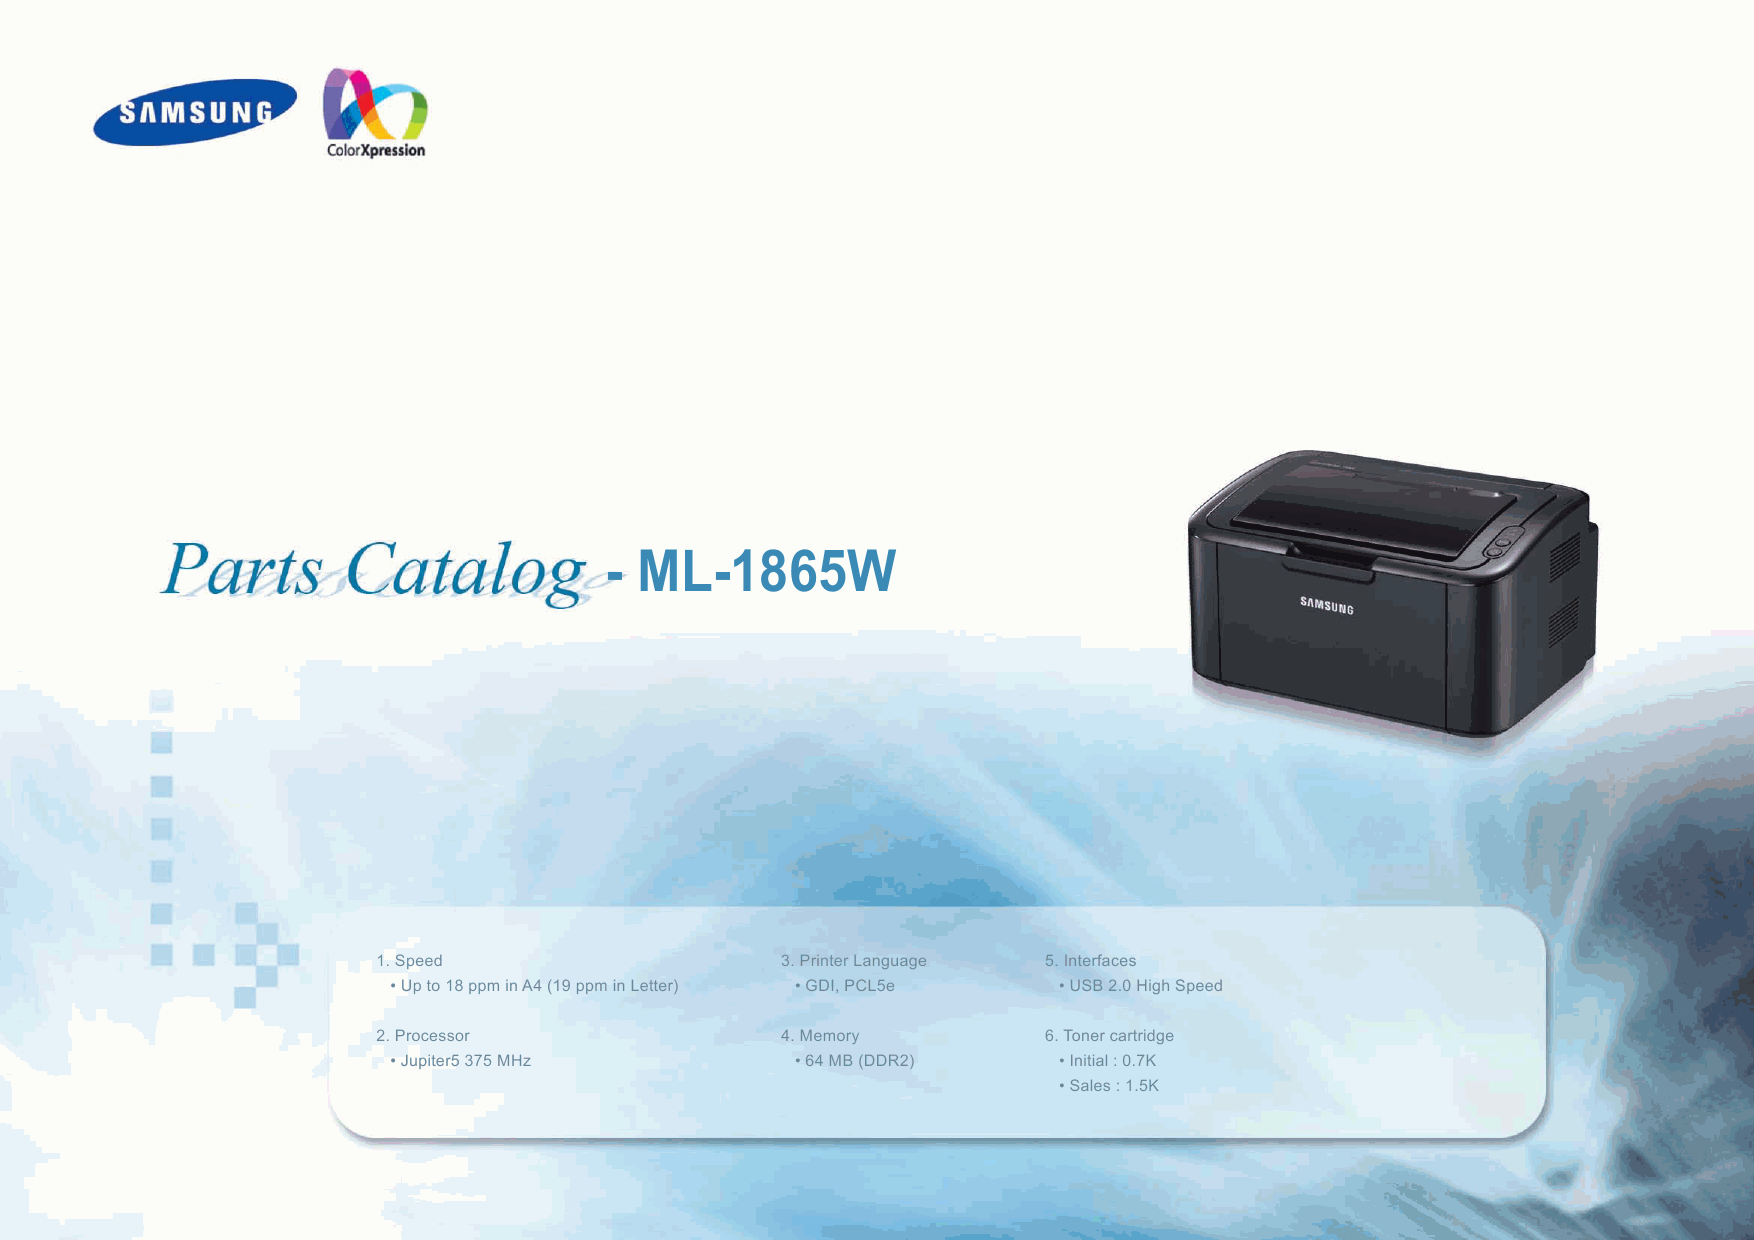 Samsung Laser-Printer ML-1865W Parts Manual-1